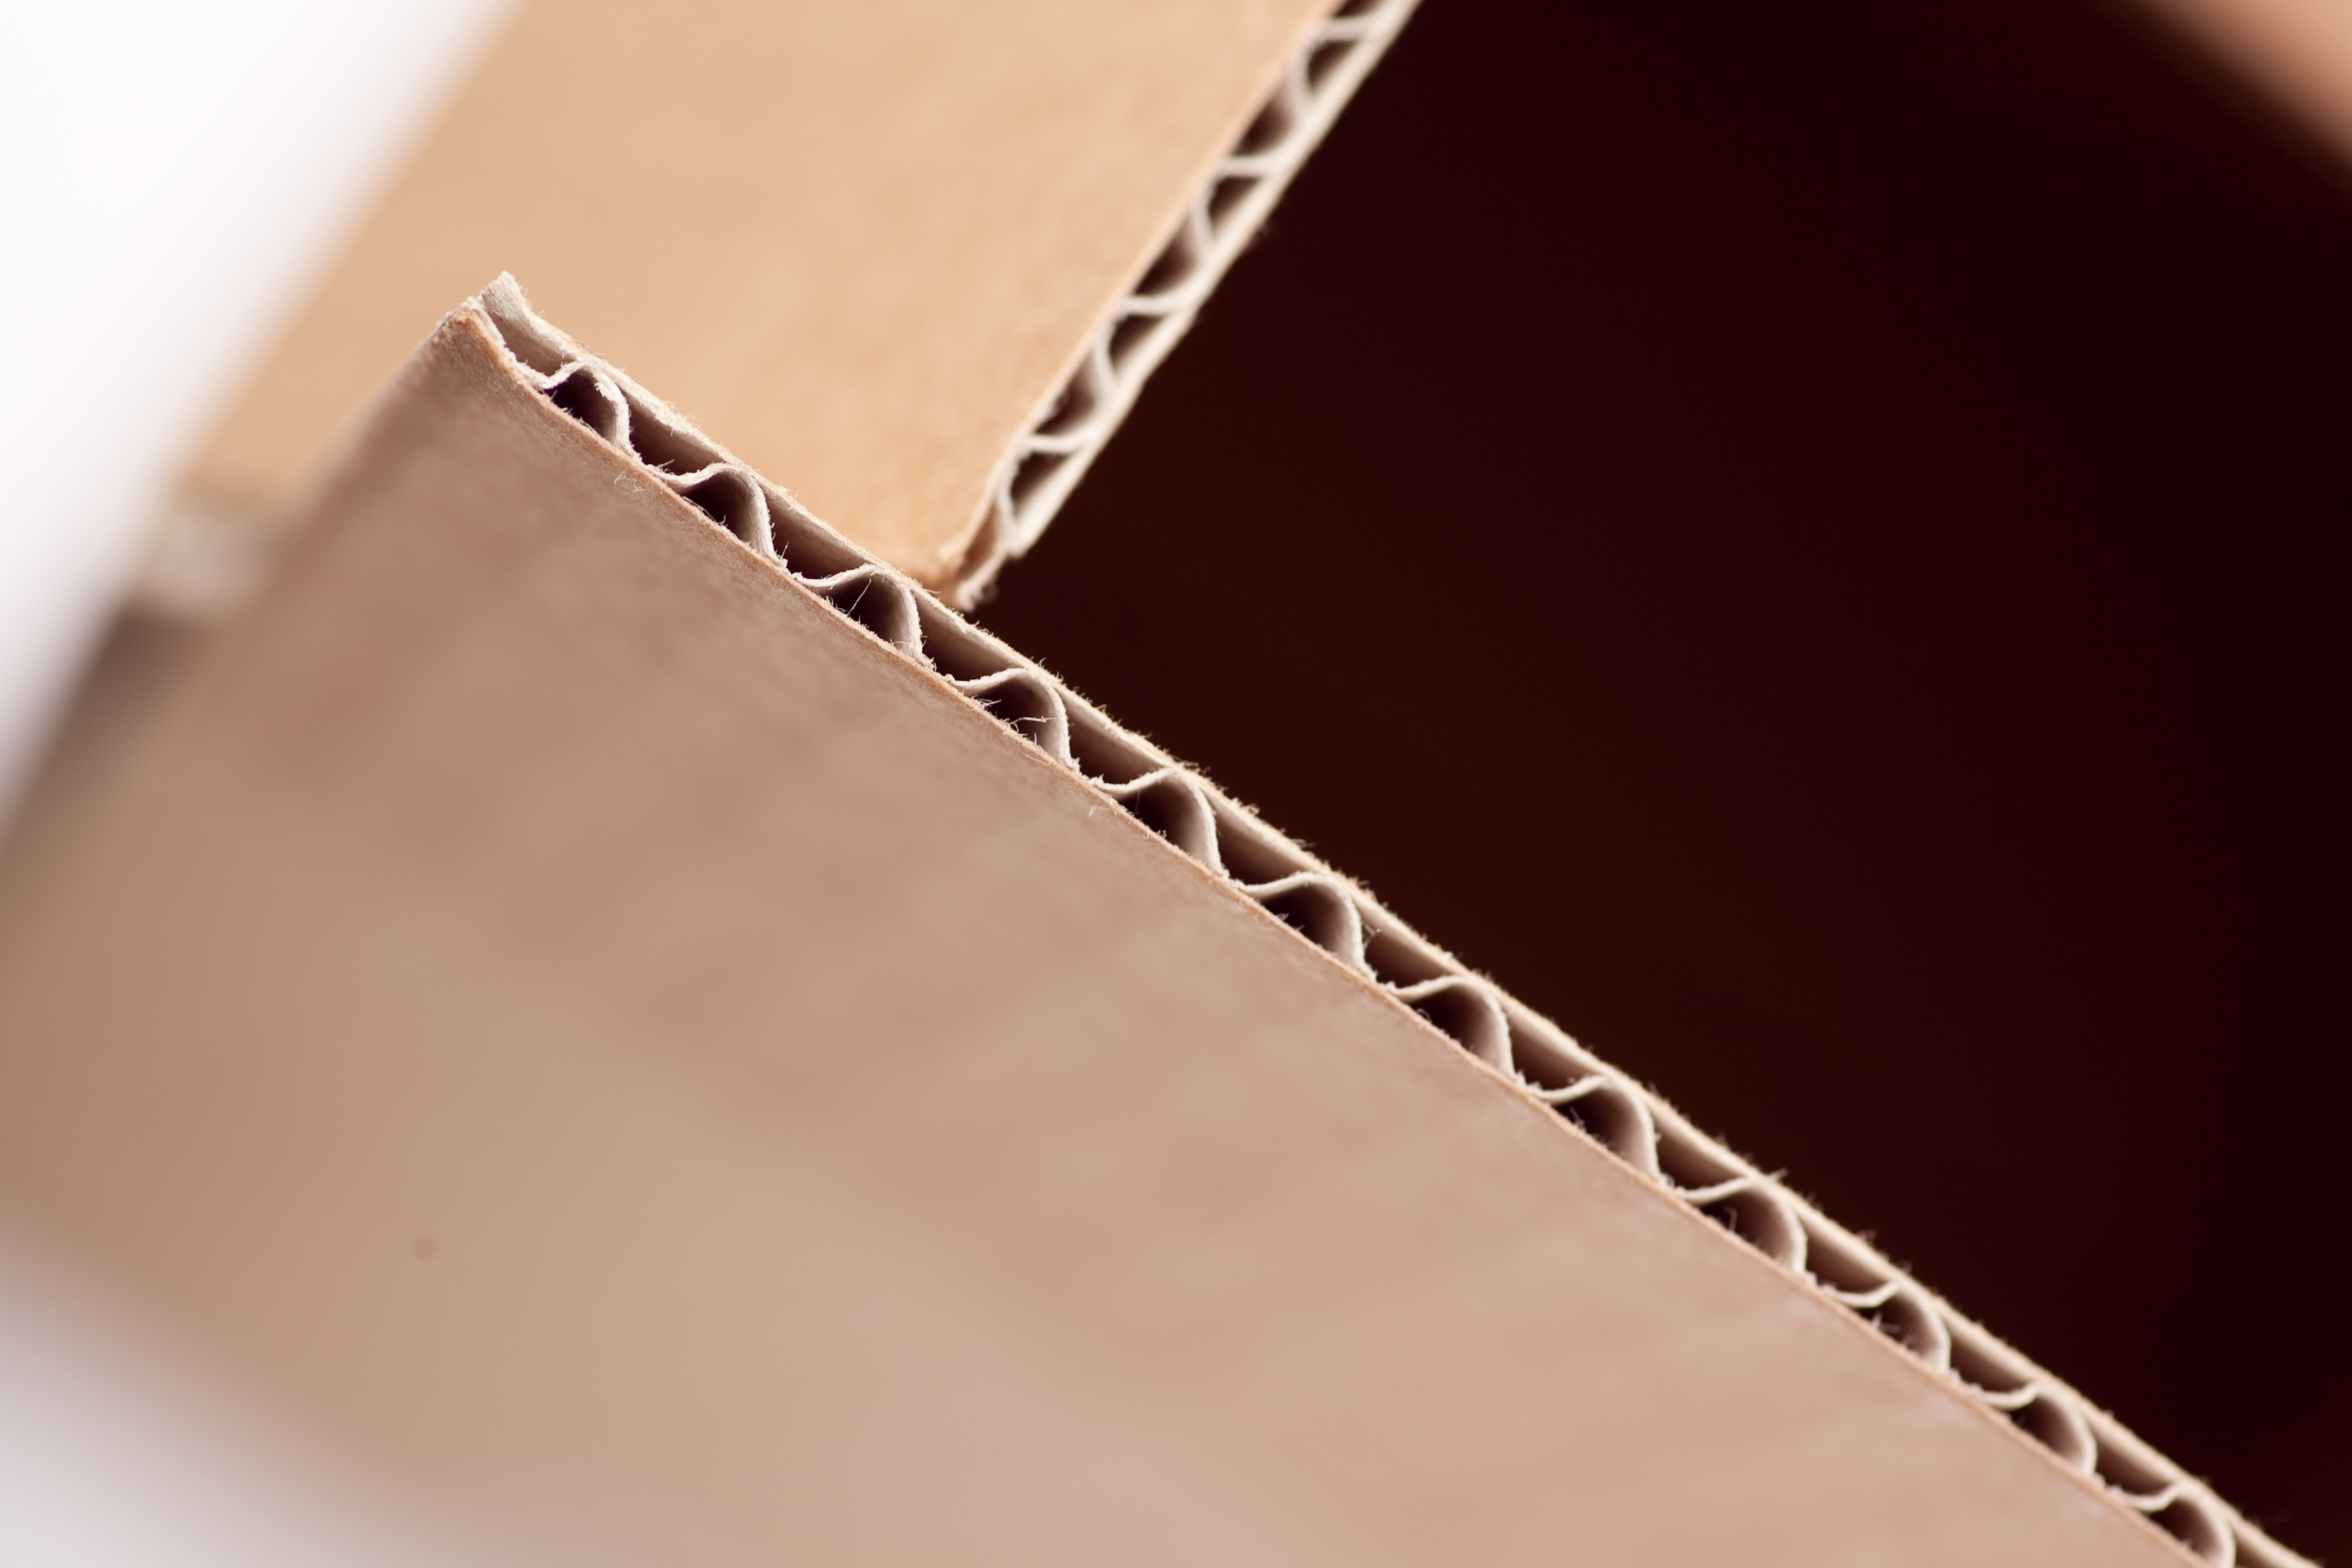 254 x 254 x 254mm Single Wall Cardboard Boxes - 4